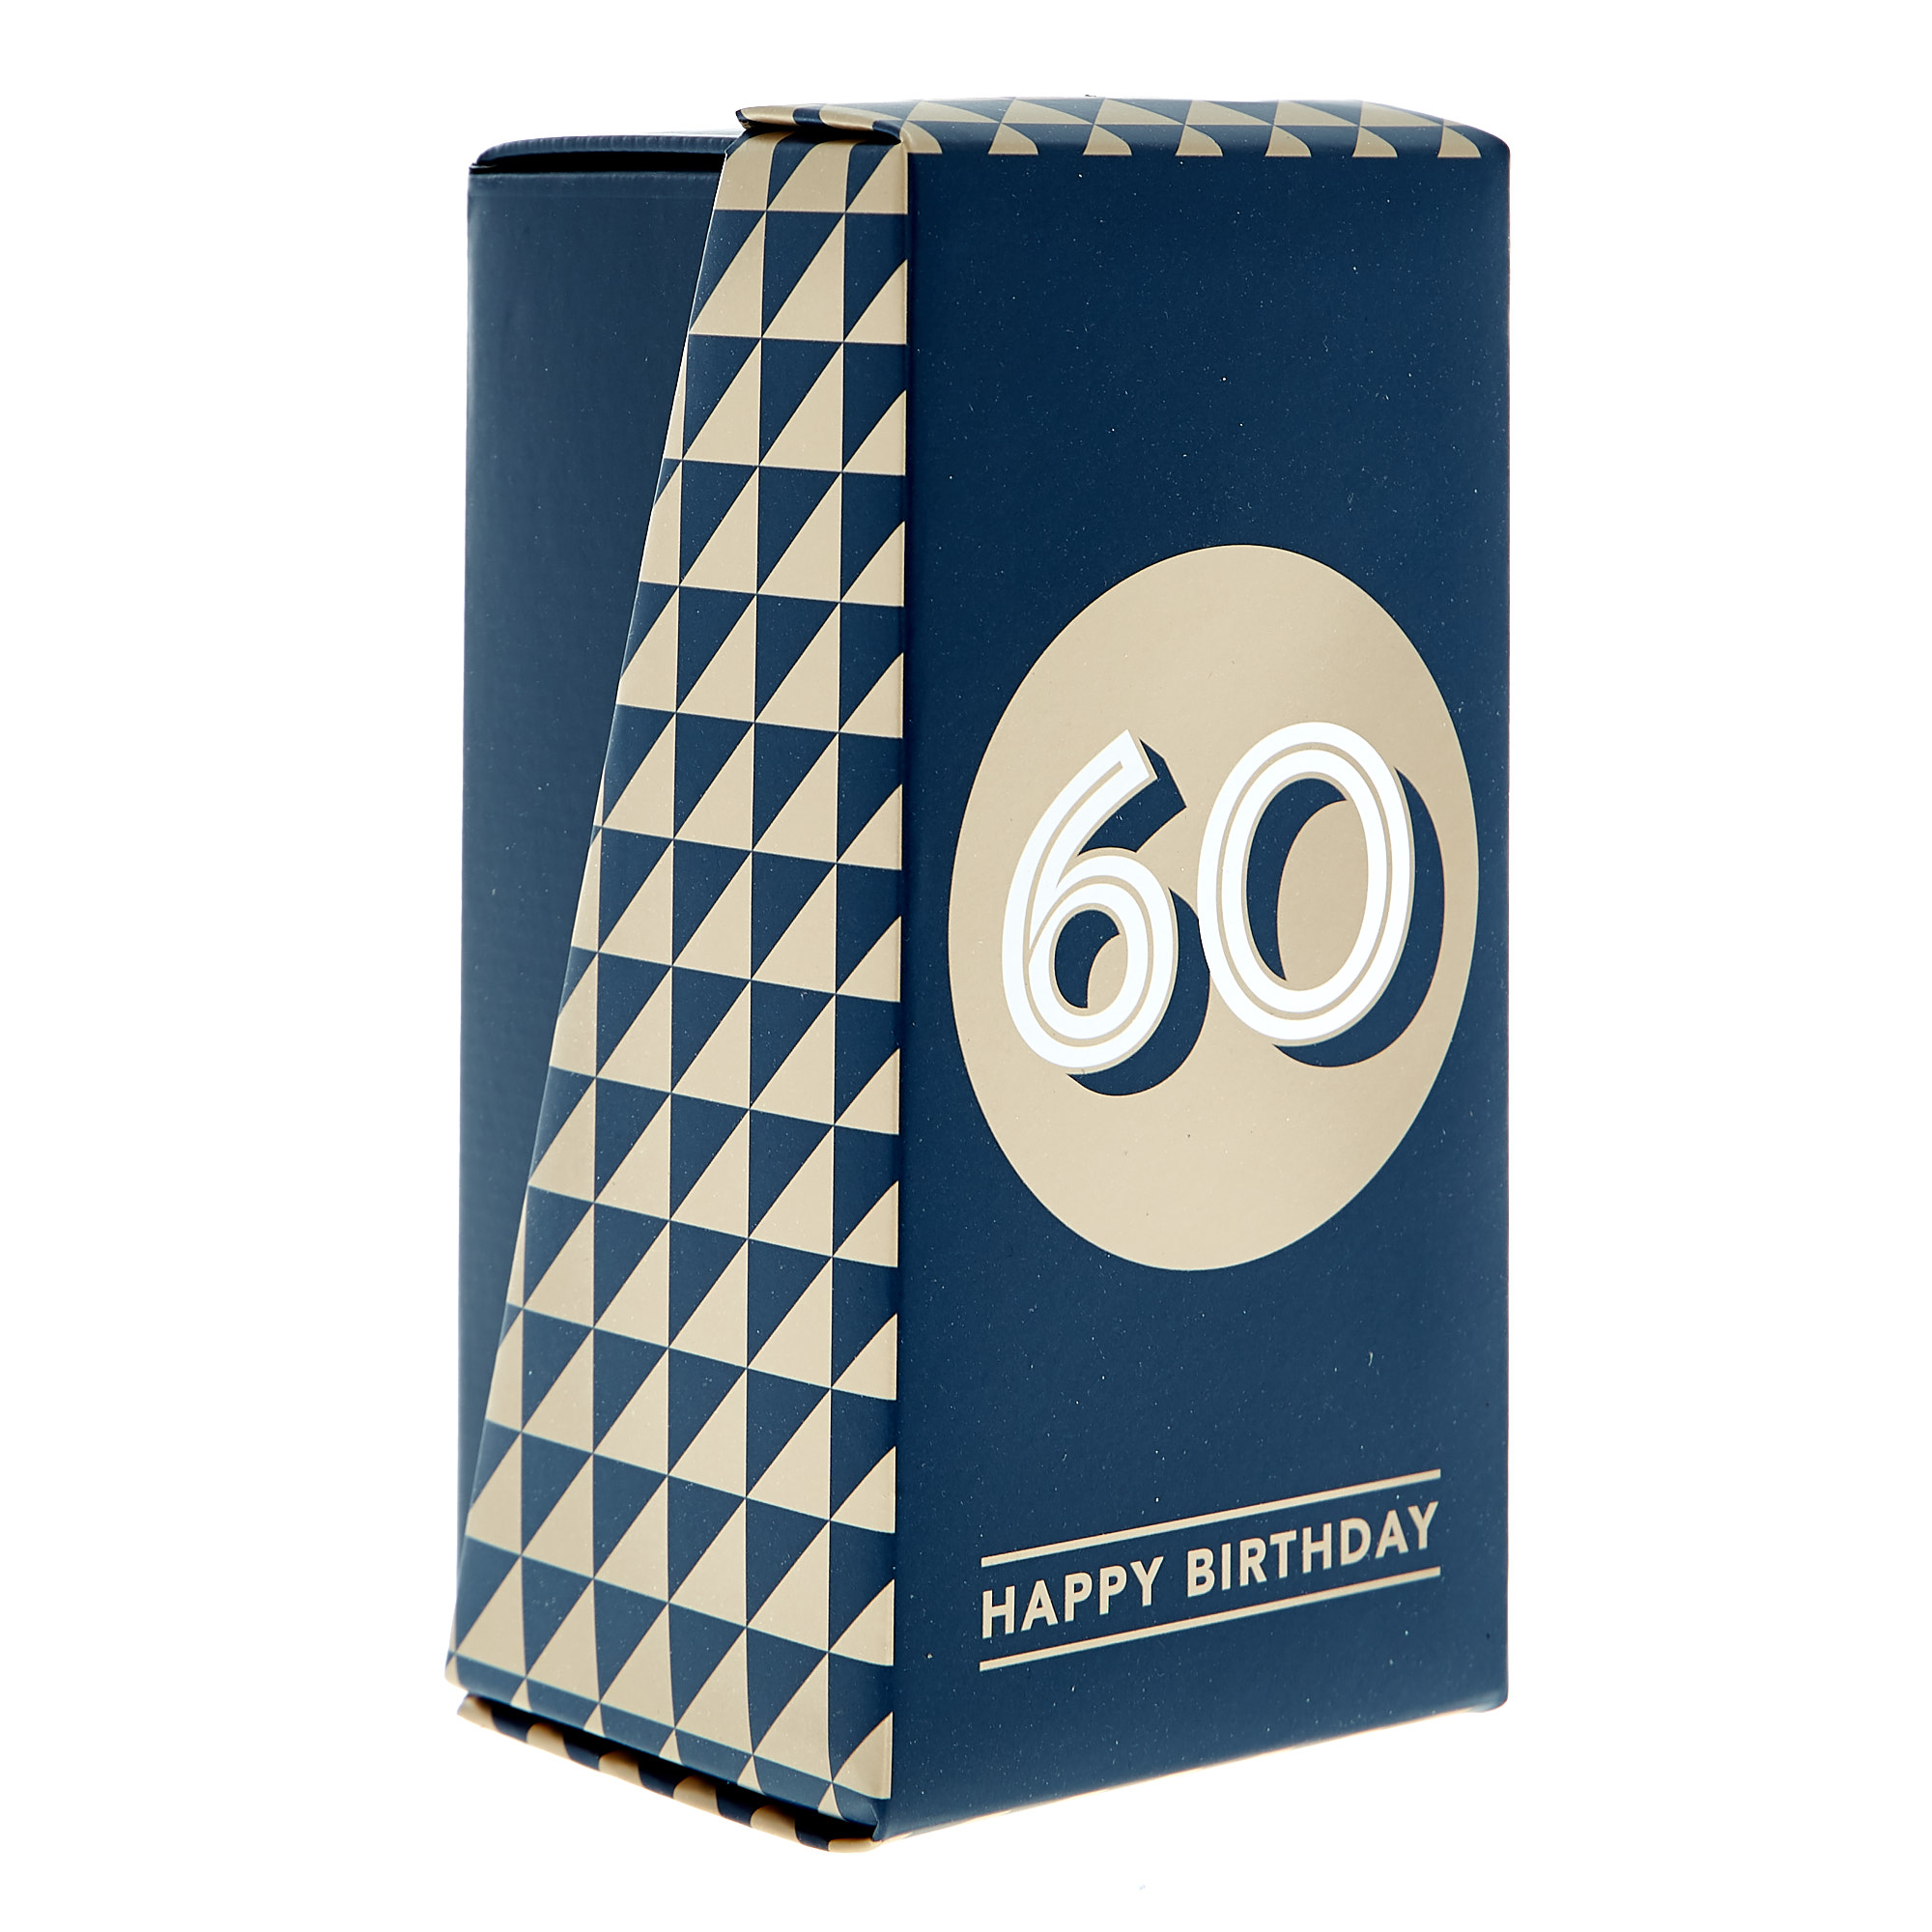 60th Birthday Pint Glass In A Box - Blue & Gold